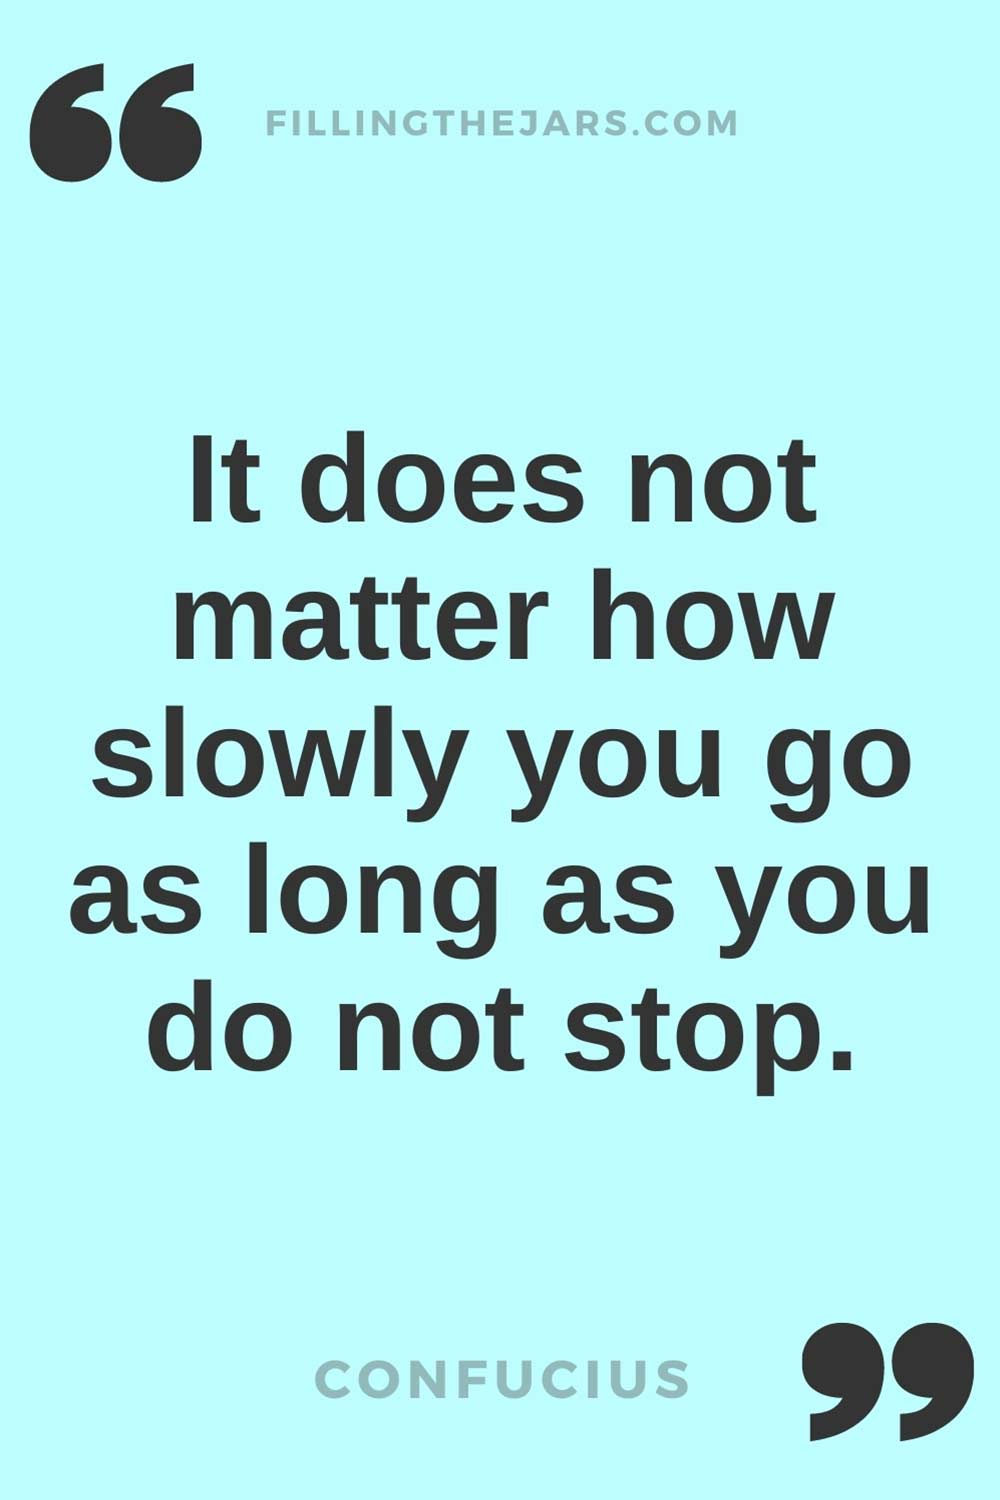 Confucius it does not matter how slowly you go quote in black text on light turquoise background.